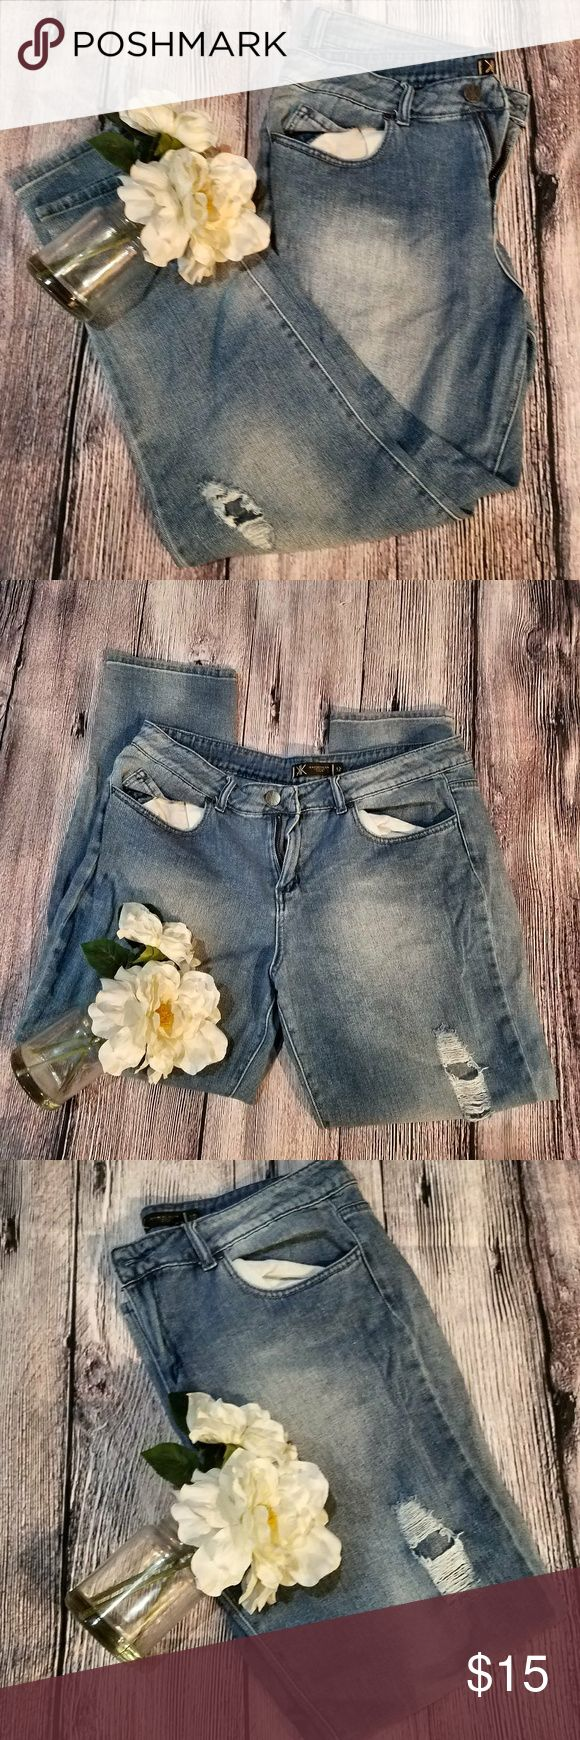 EUC KARDASHIAN KOLLECTION BOYFRIEND JEANS SZ 12 CUTE BOYFRIEND JEANS  SZ 12 KARDASHIAN KOLLECTION  PREMIUM DENIM  STYLE KELSEY PERFECT TO PAIR WITH TSHIRTS FOR THIS SUMMER!  BUNDLE TO SAVE! Kardashian Kollection Jeans Boyfriend